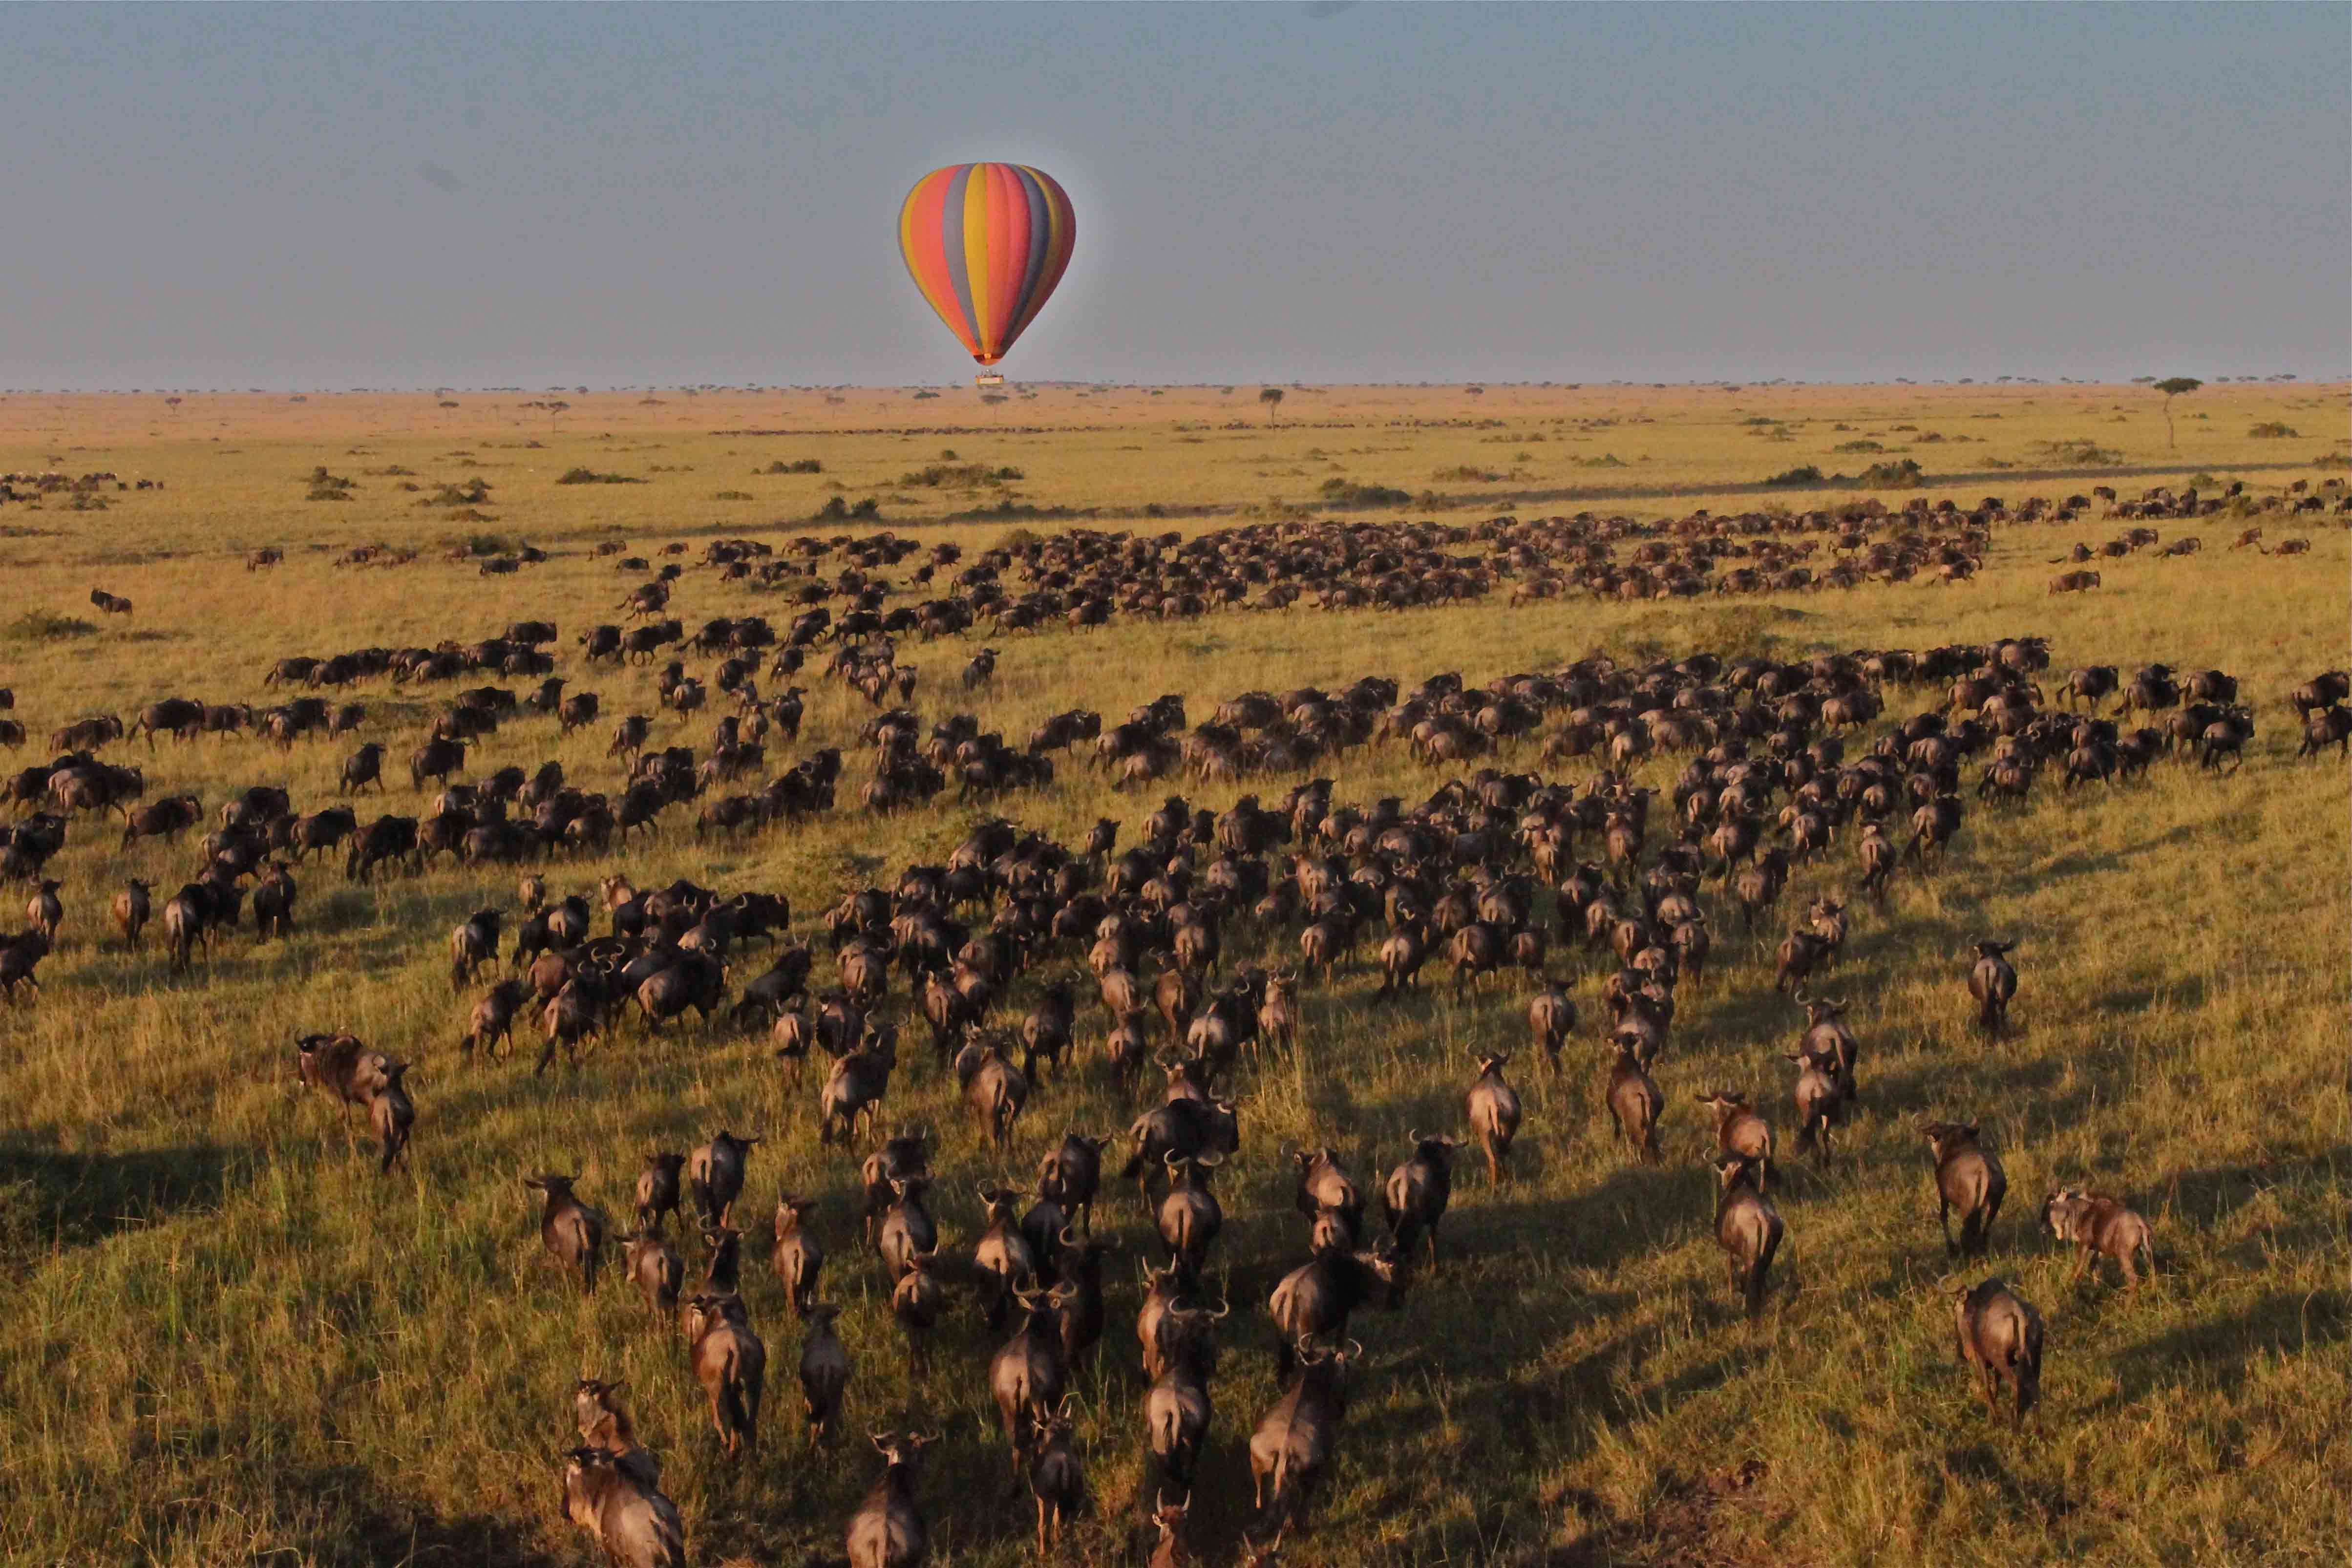 Ballooning over the Great Migration